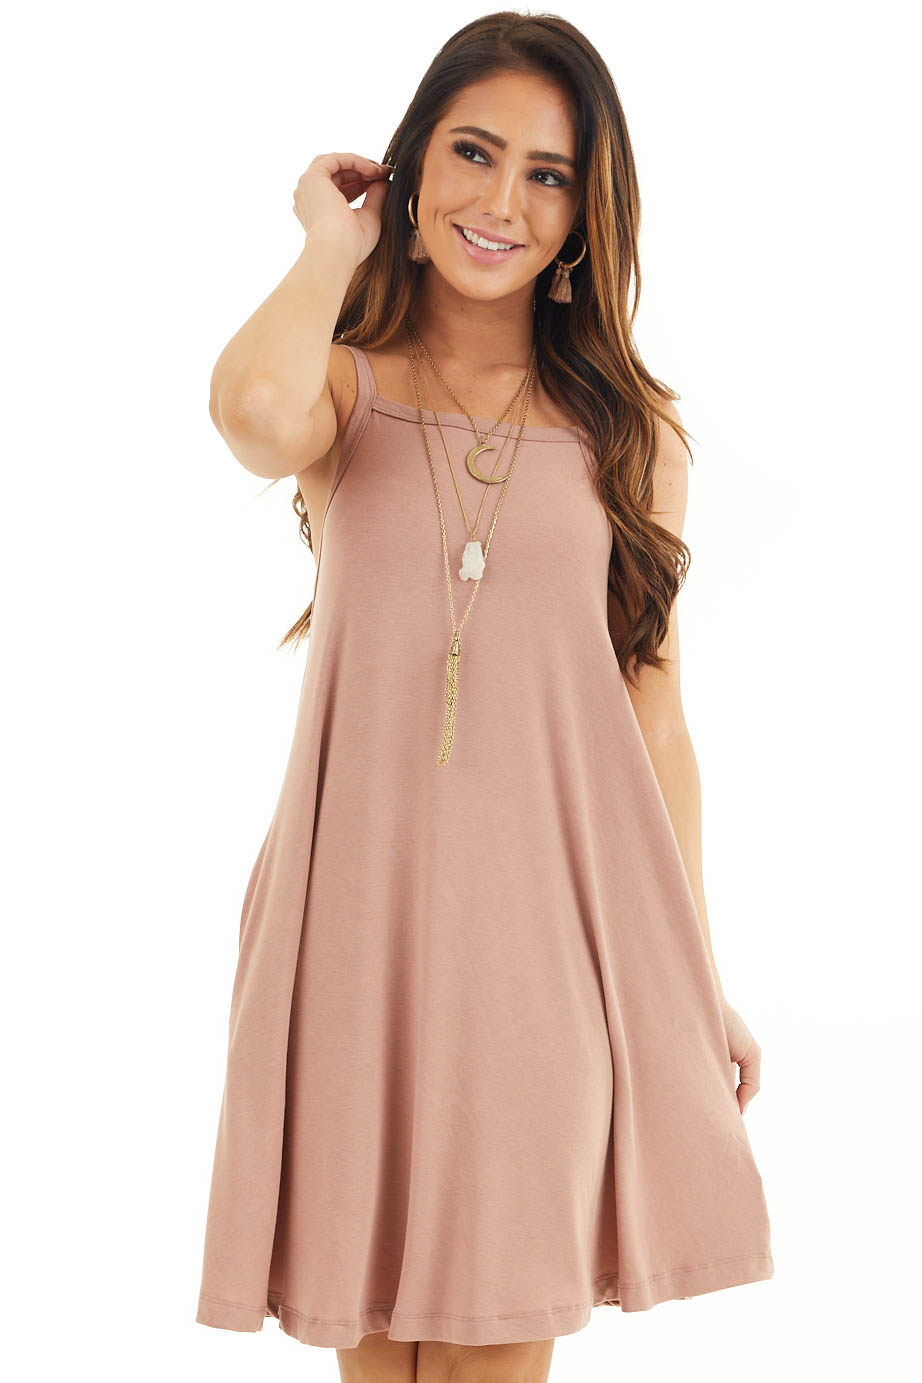 Dusty Rose Square Neck Mini Tank Dress with Side Pockets